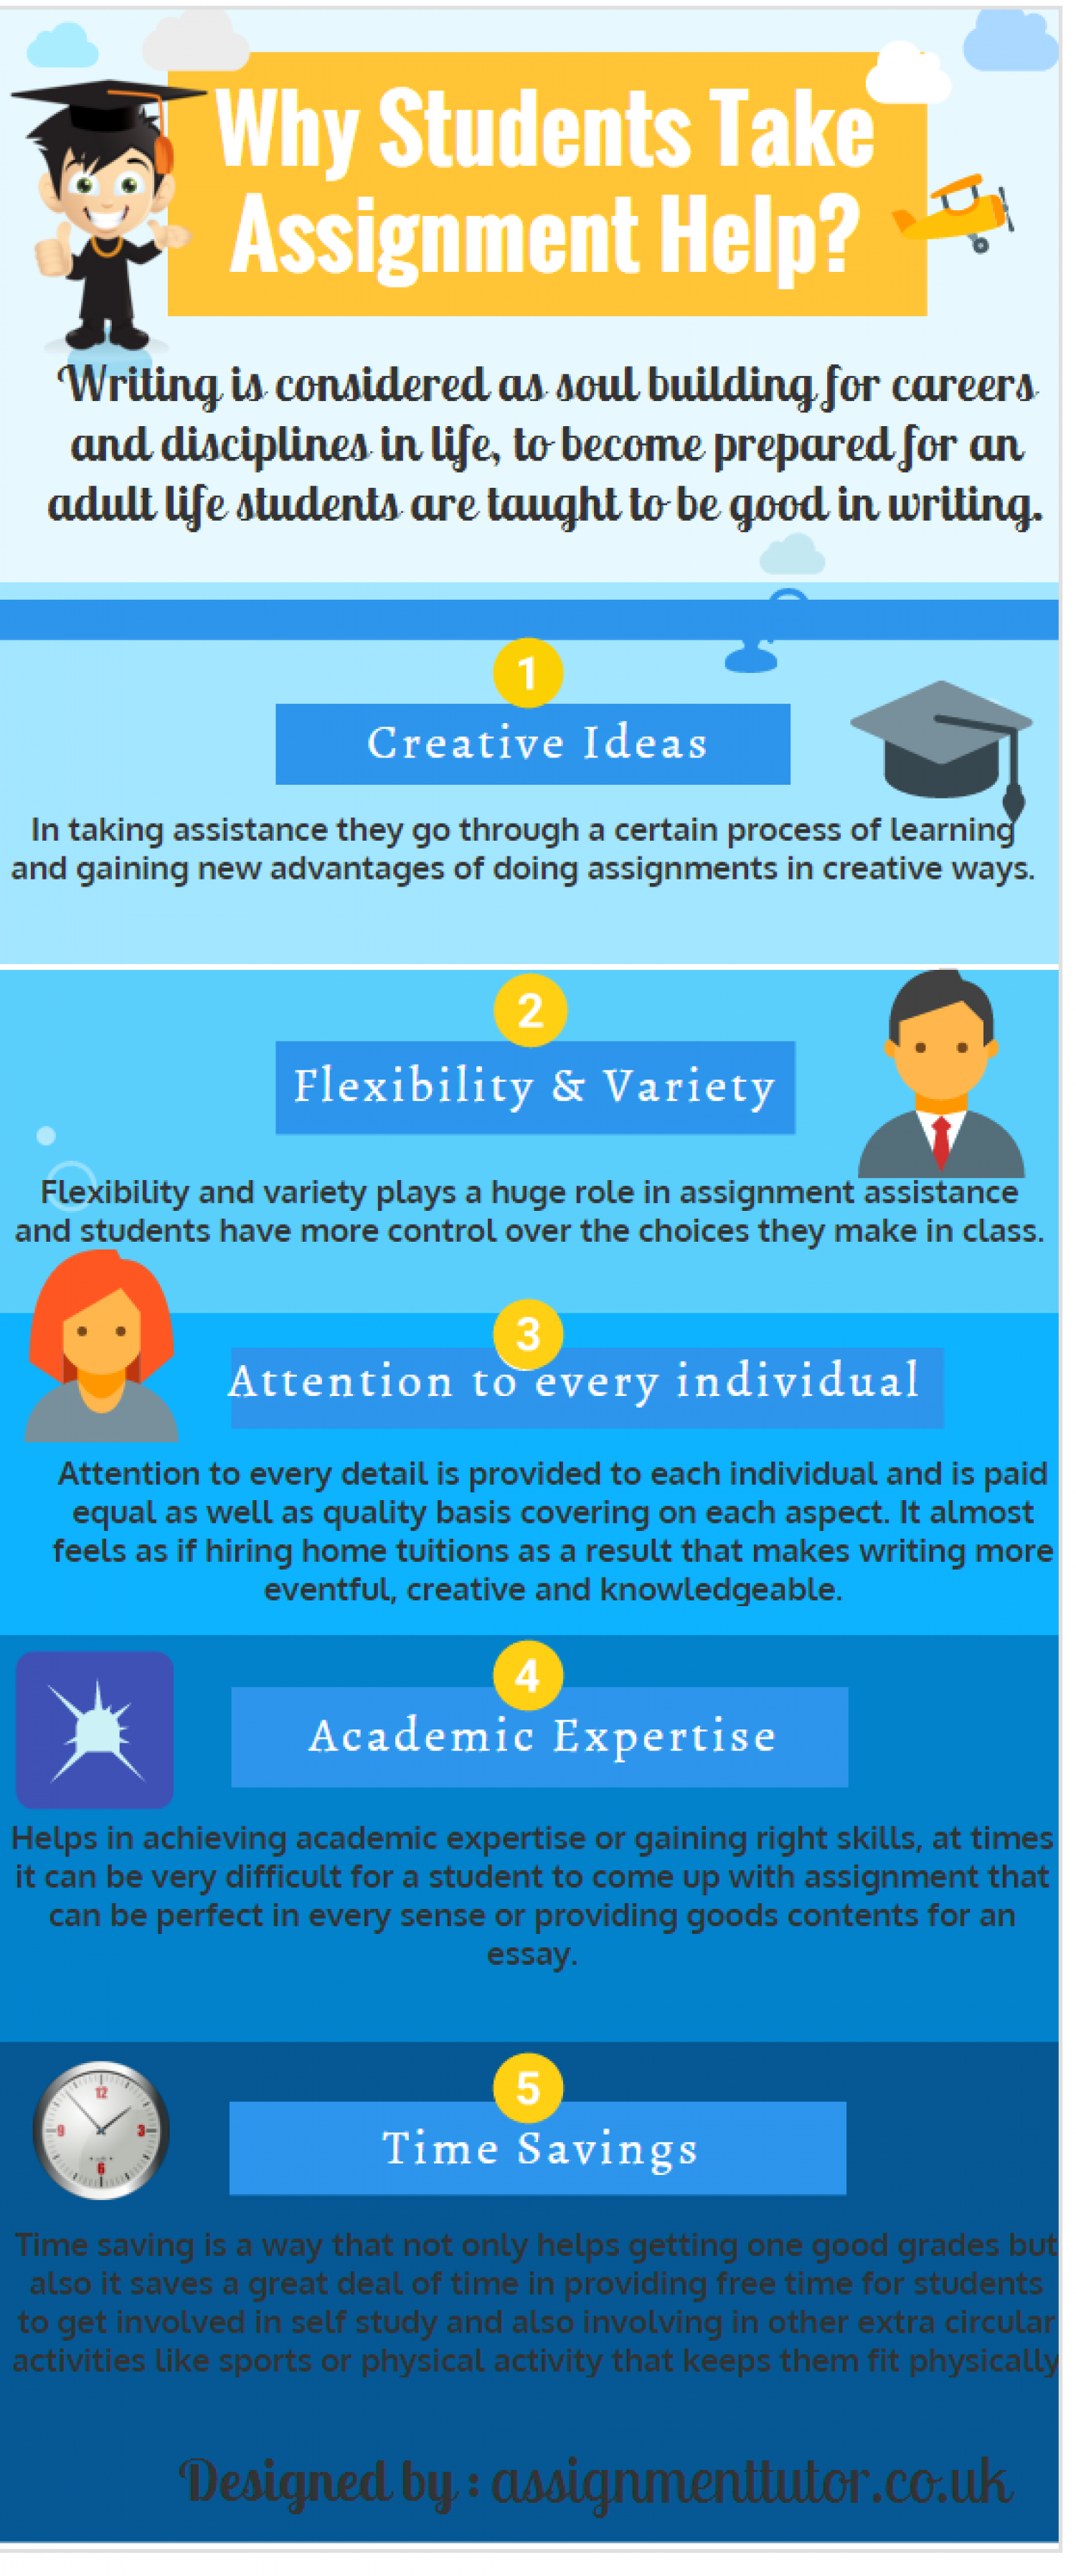 why students take assignment help ly why students take assignment help infographic